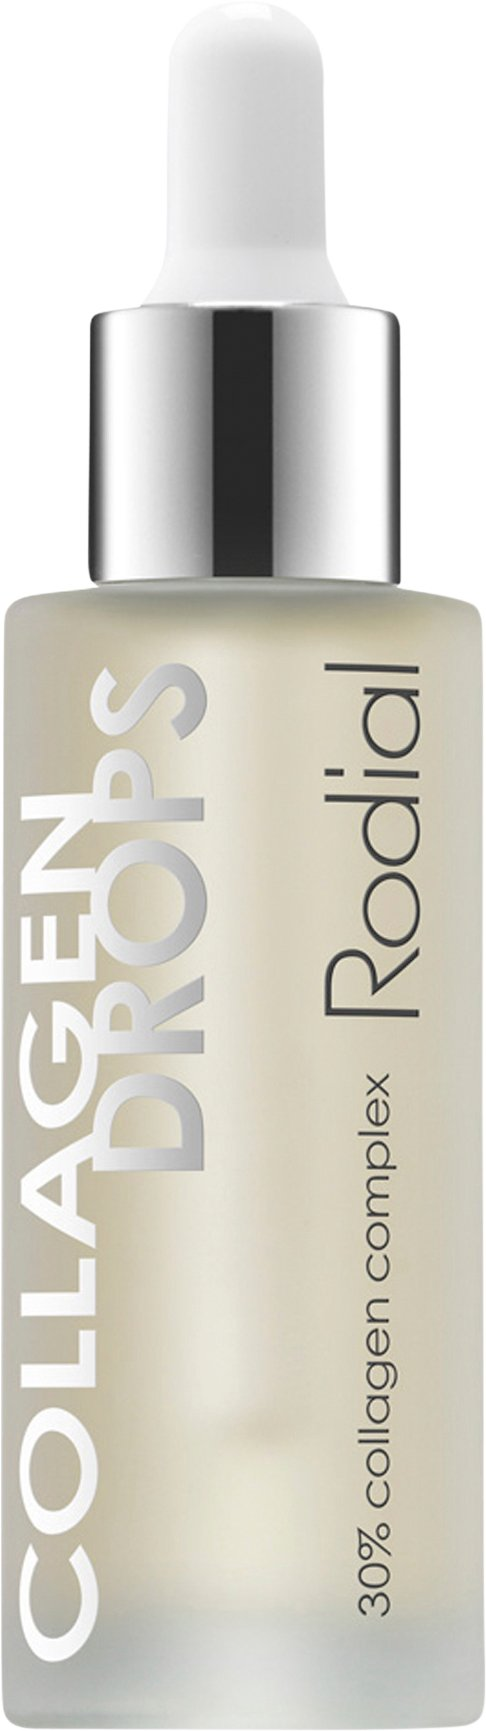 Rodial - Collagen 30% Booster Drops